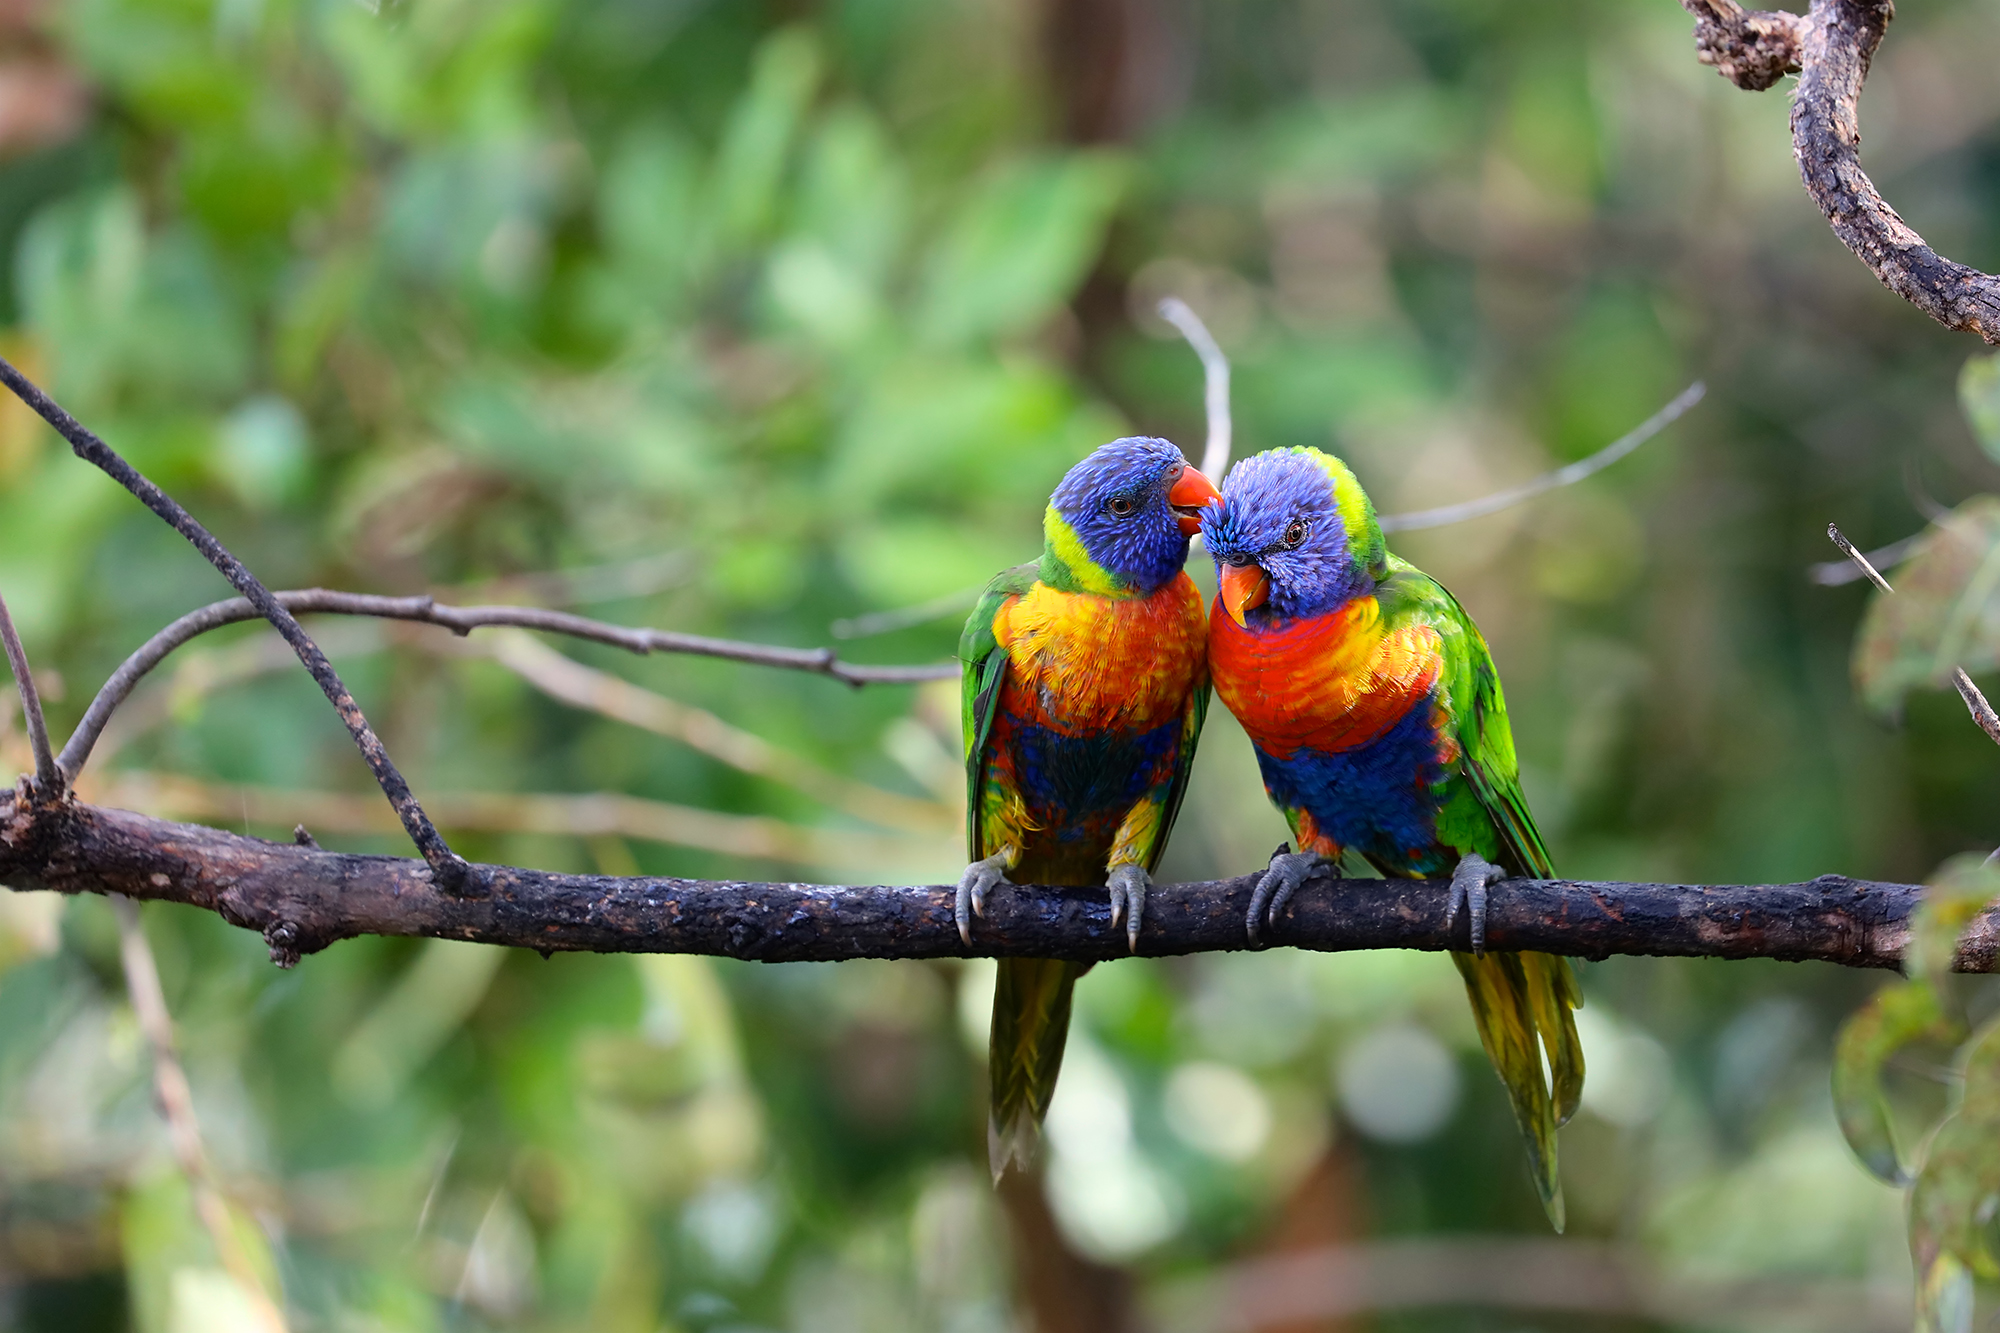 One Rainbow Lorikeet grooming another on a tree branch